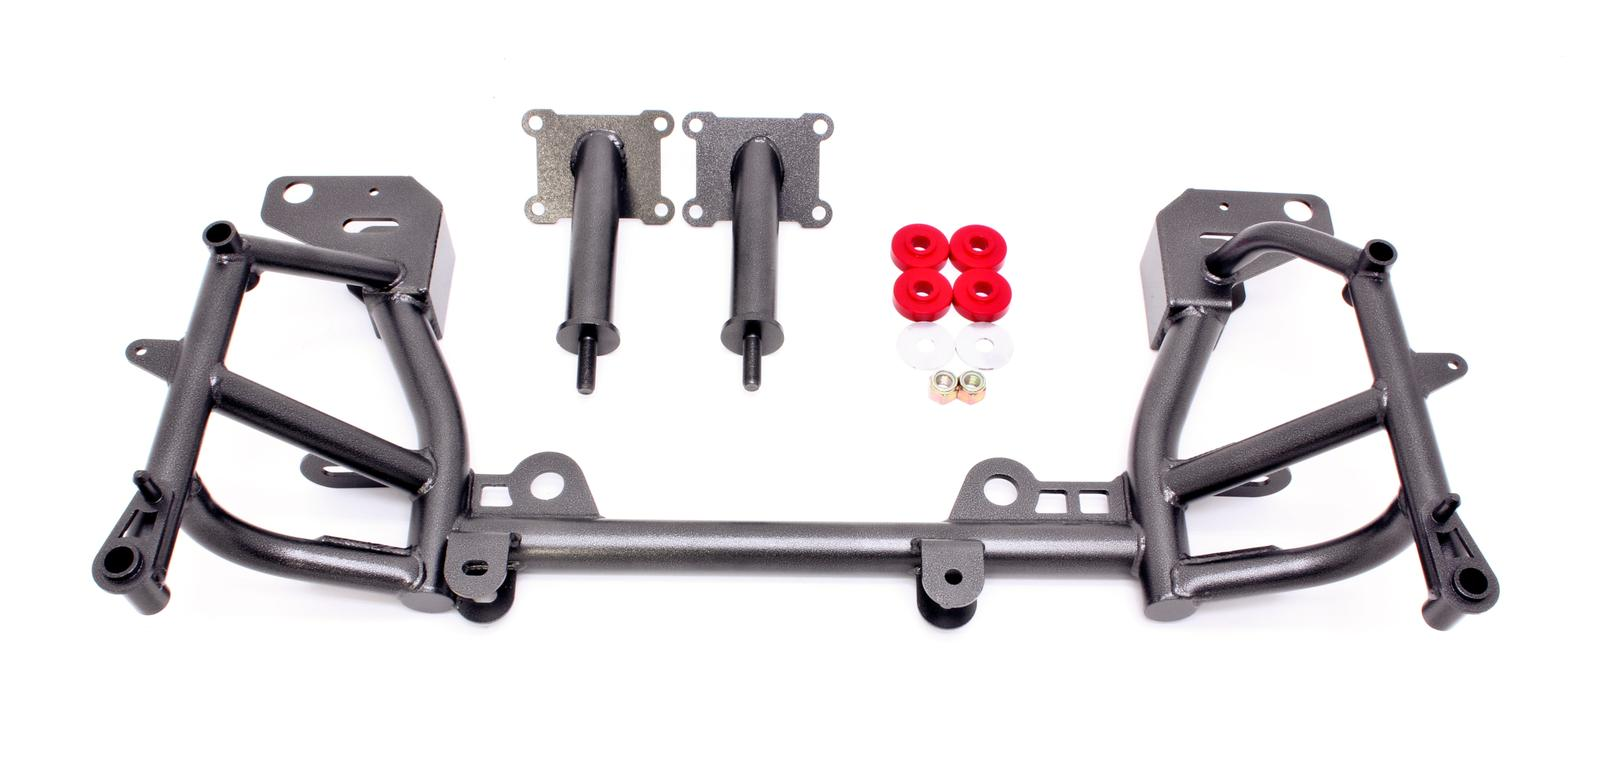 98-02 LS1 Fbody BMR Suspension K-member, Low Mount Turbo, LS1 Motor Mounts, Pinto Rack Mounts